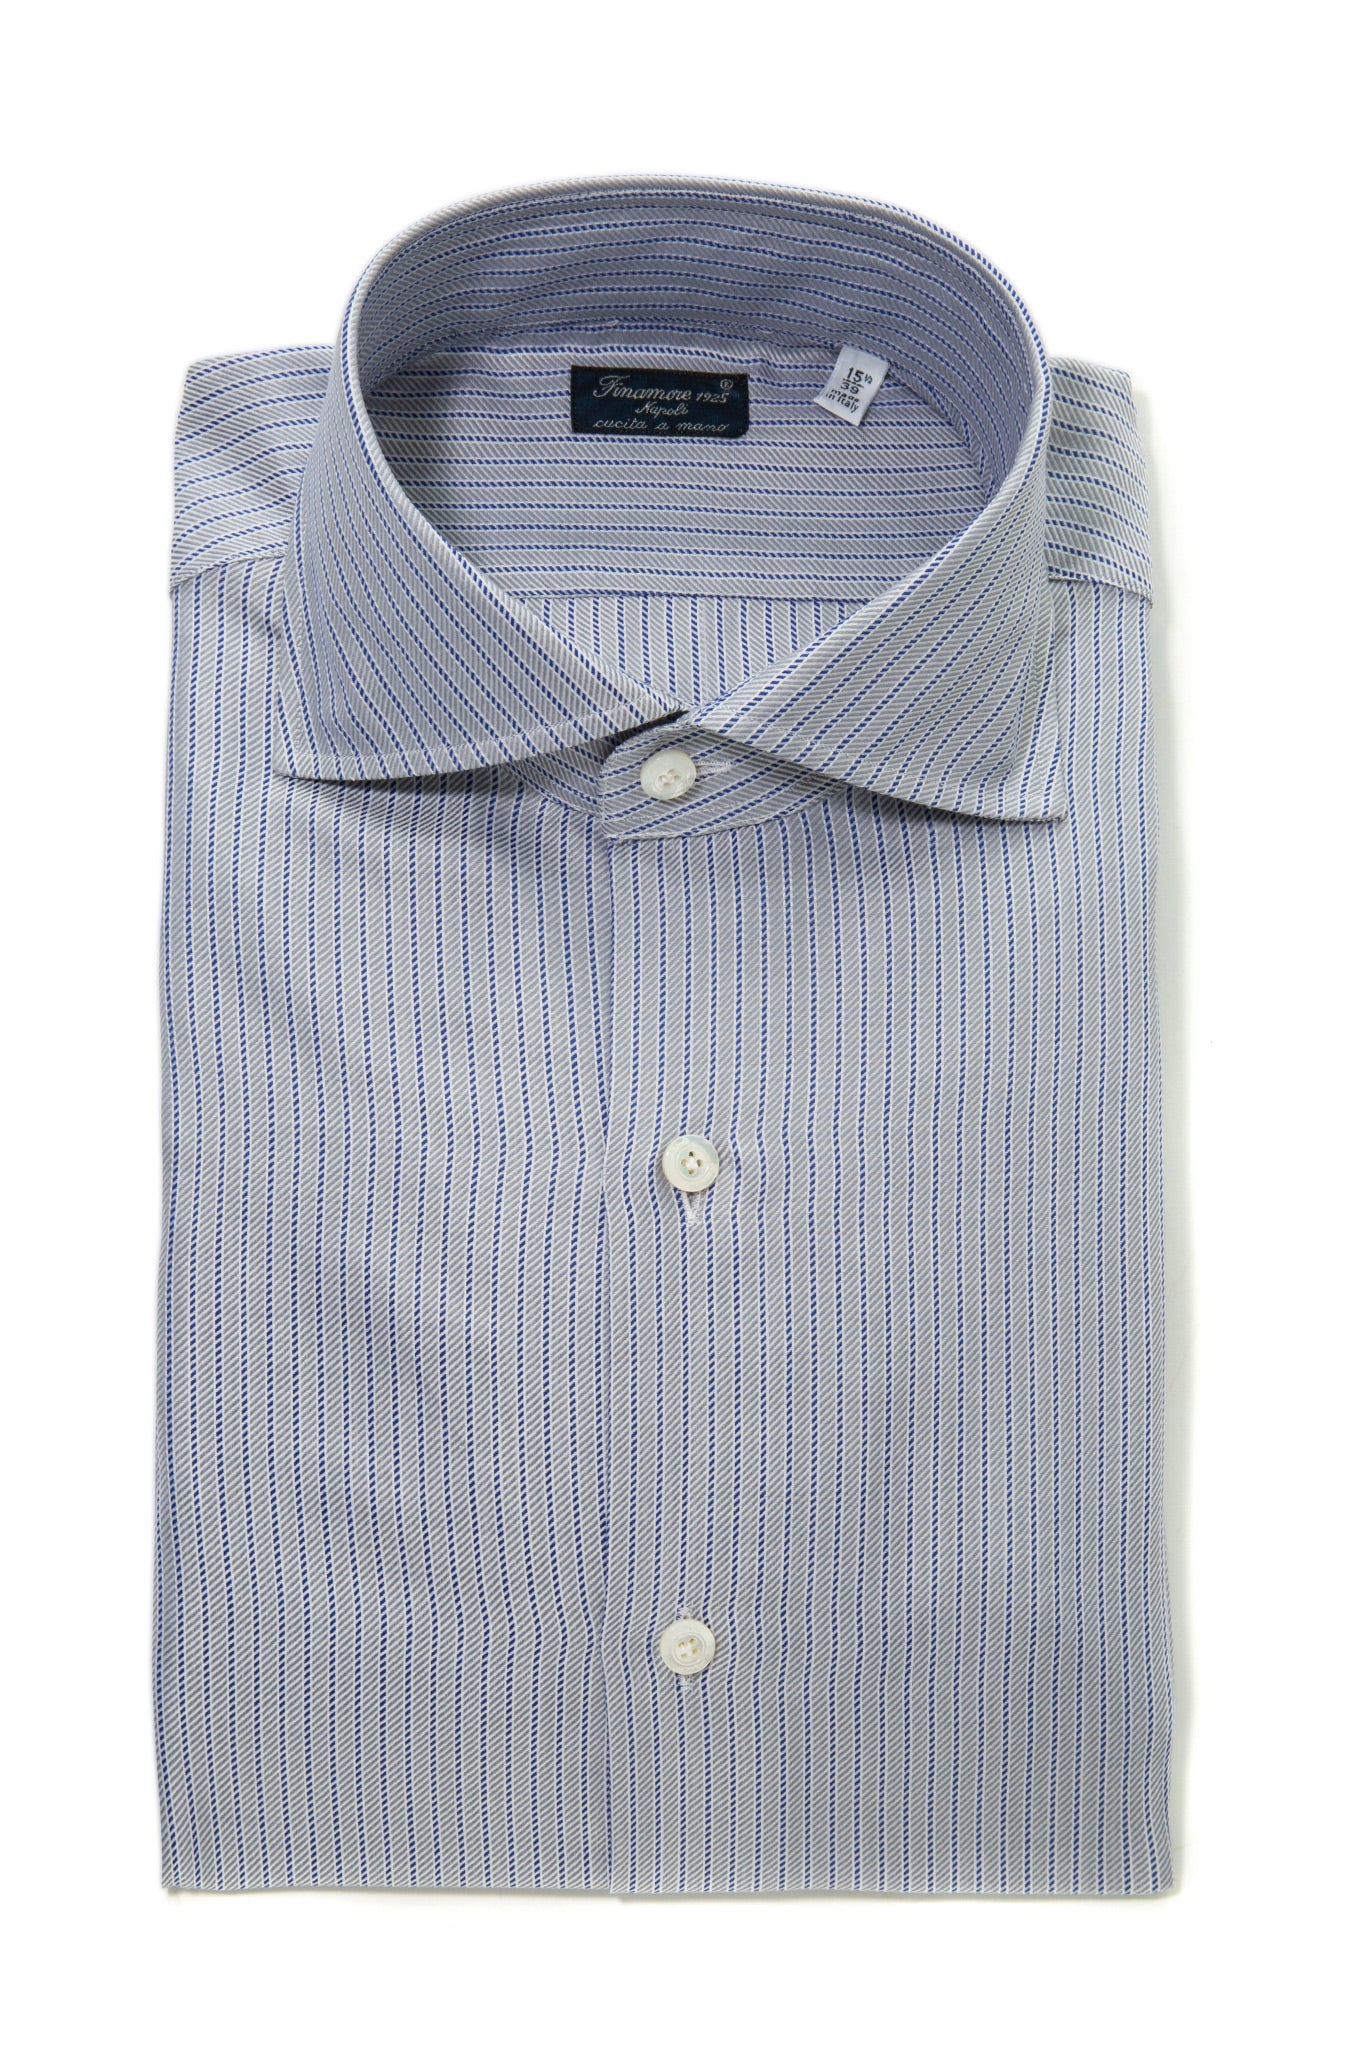 Finamore Gasparre Striped Dress Shirt (323230105624)